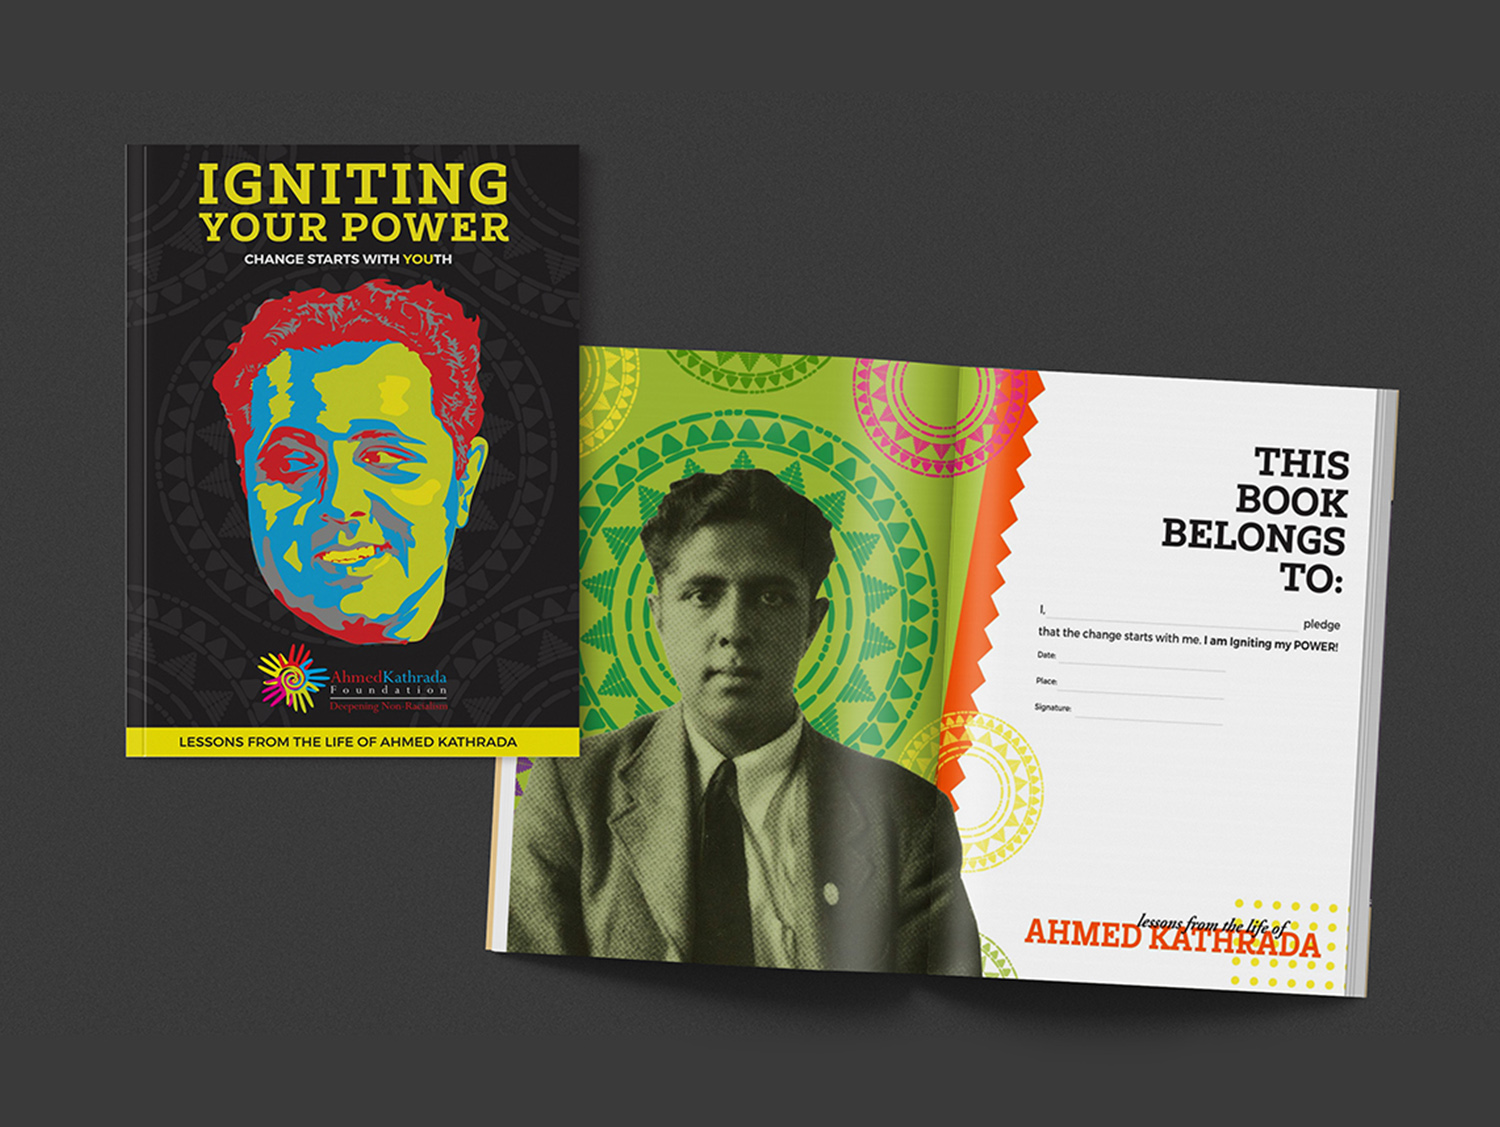 igniting-your-power-ahmed-kathrada-you-activist-activity-booklet-graphic-design-agent-orange-design.jpg